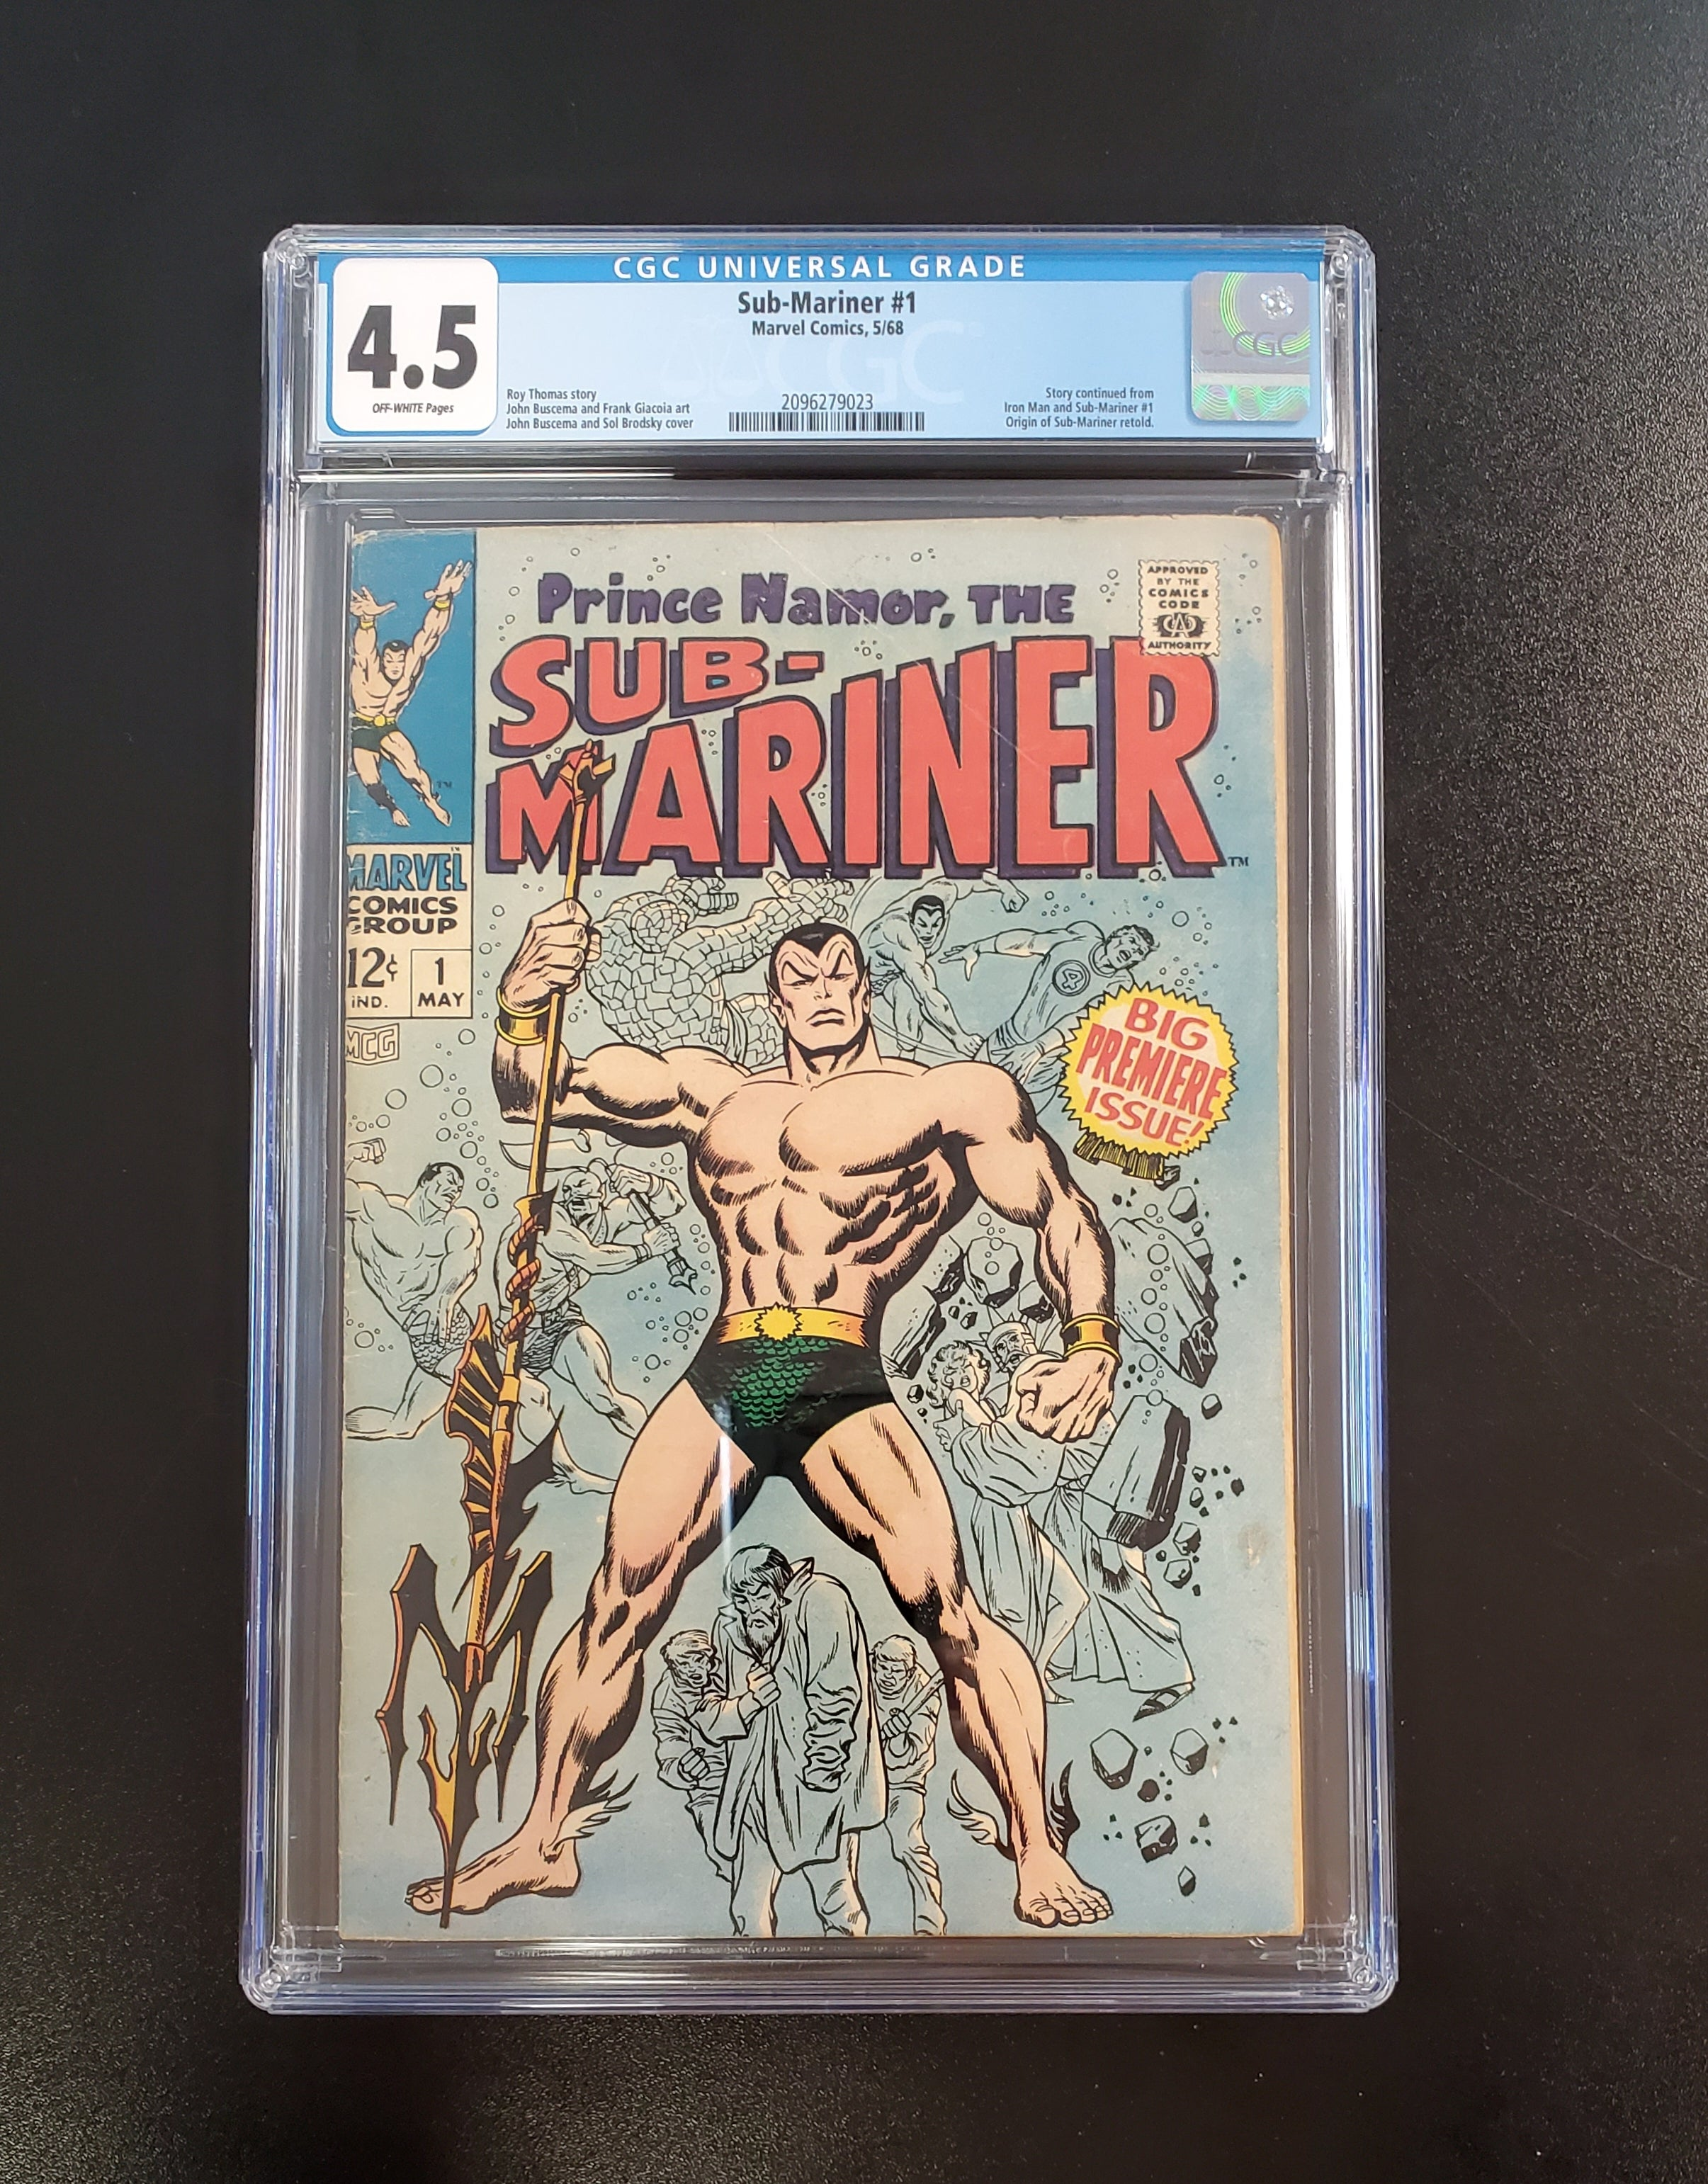 4.5 CGC Sub-Mariner #1 (Origin of Sub-Mariner Retold) 1968